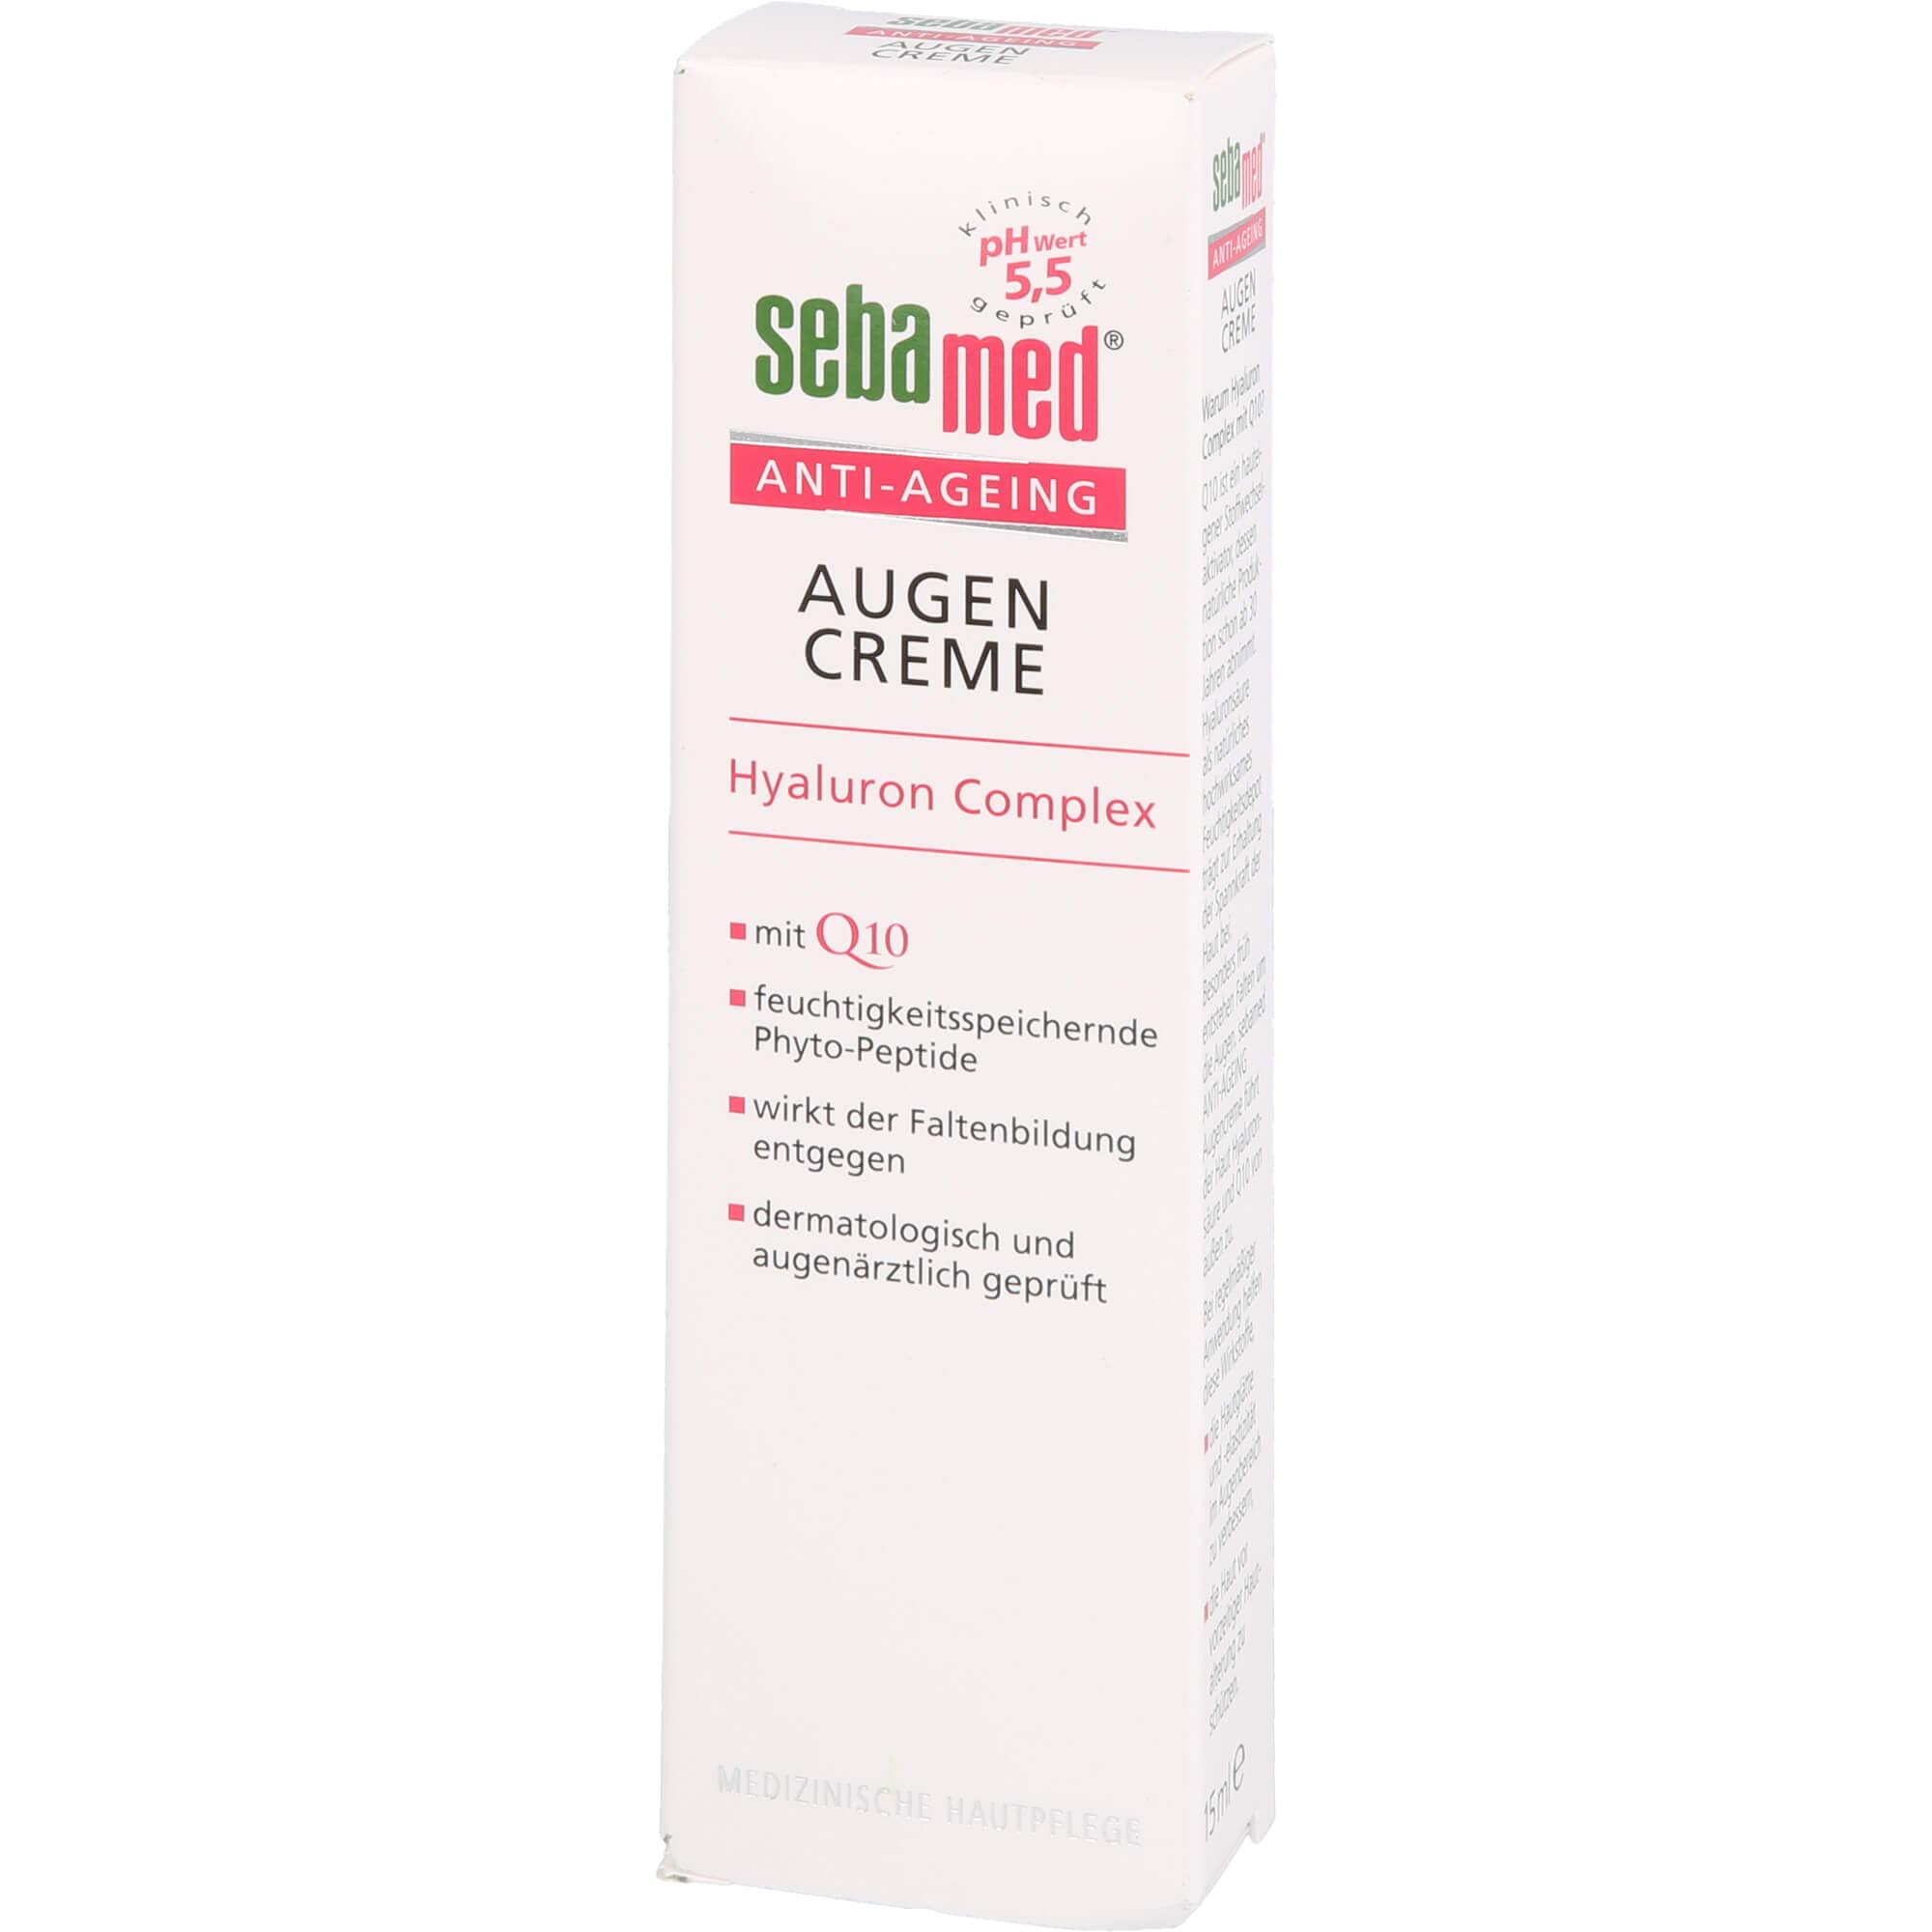 SEBAMED Anti-Ageing Augencreme Q10